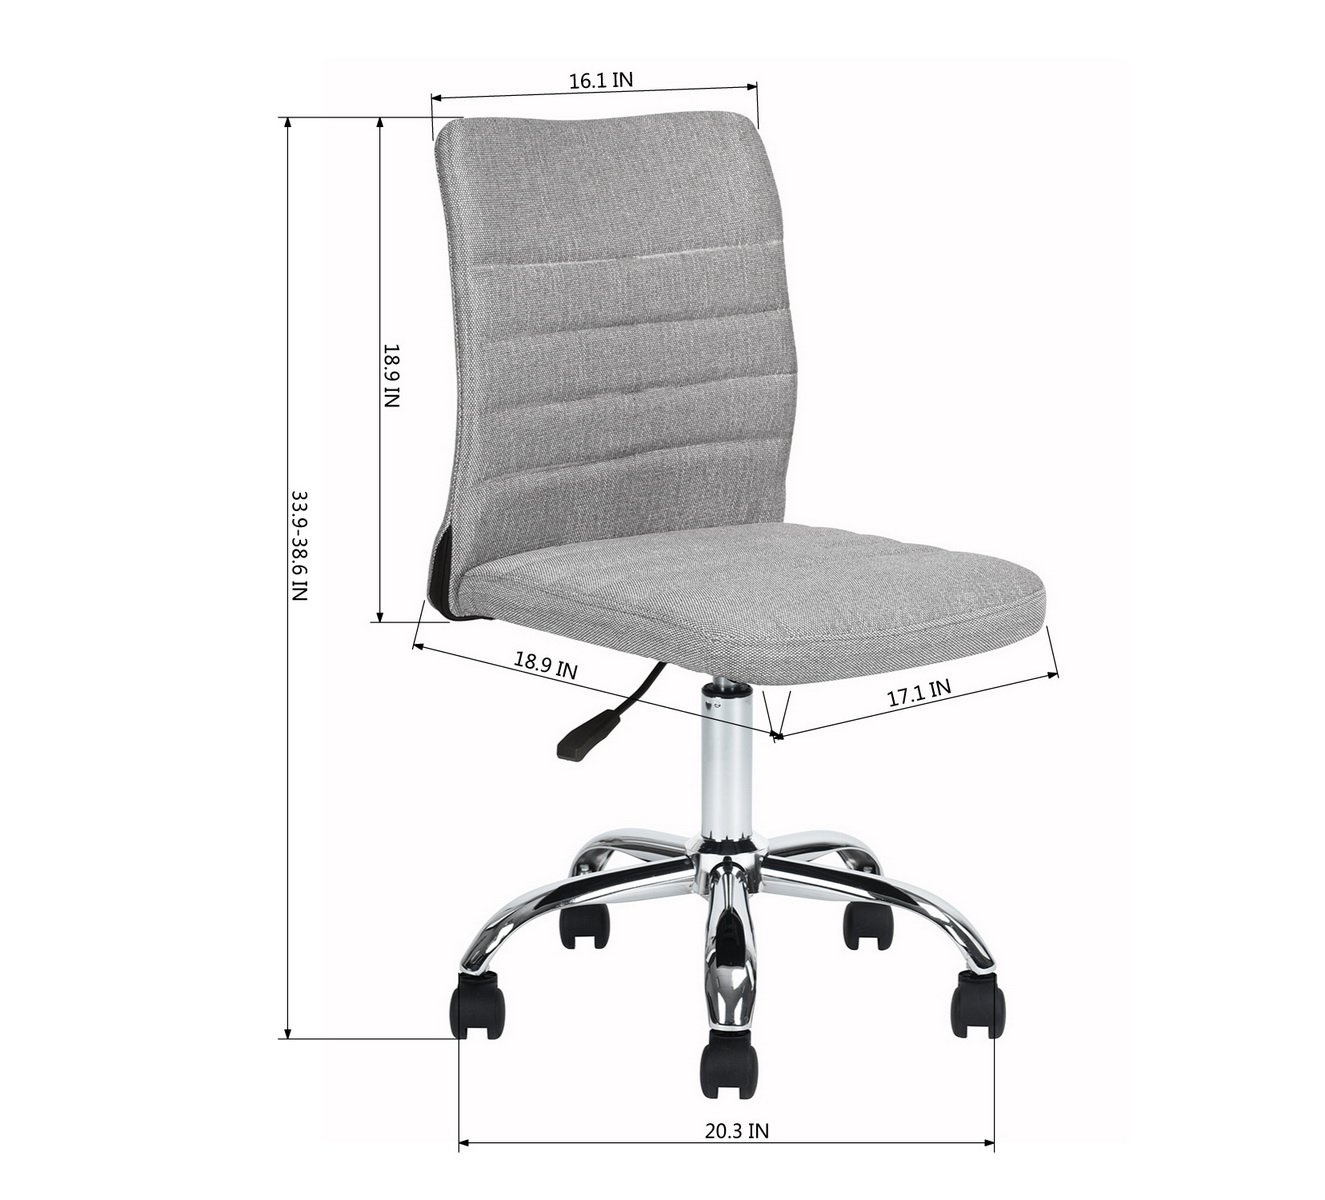 Swell Homy Casa Home Office Chair Grey Fabric Upholstery Mid Back Ergonomic Computer Desk Chair Height Adjustable 360 Degree Swivel Gmtry Best Dining Table And Chair Ideas Images Gmtryco